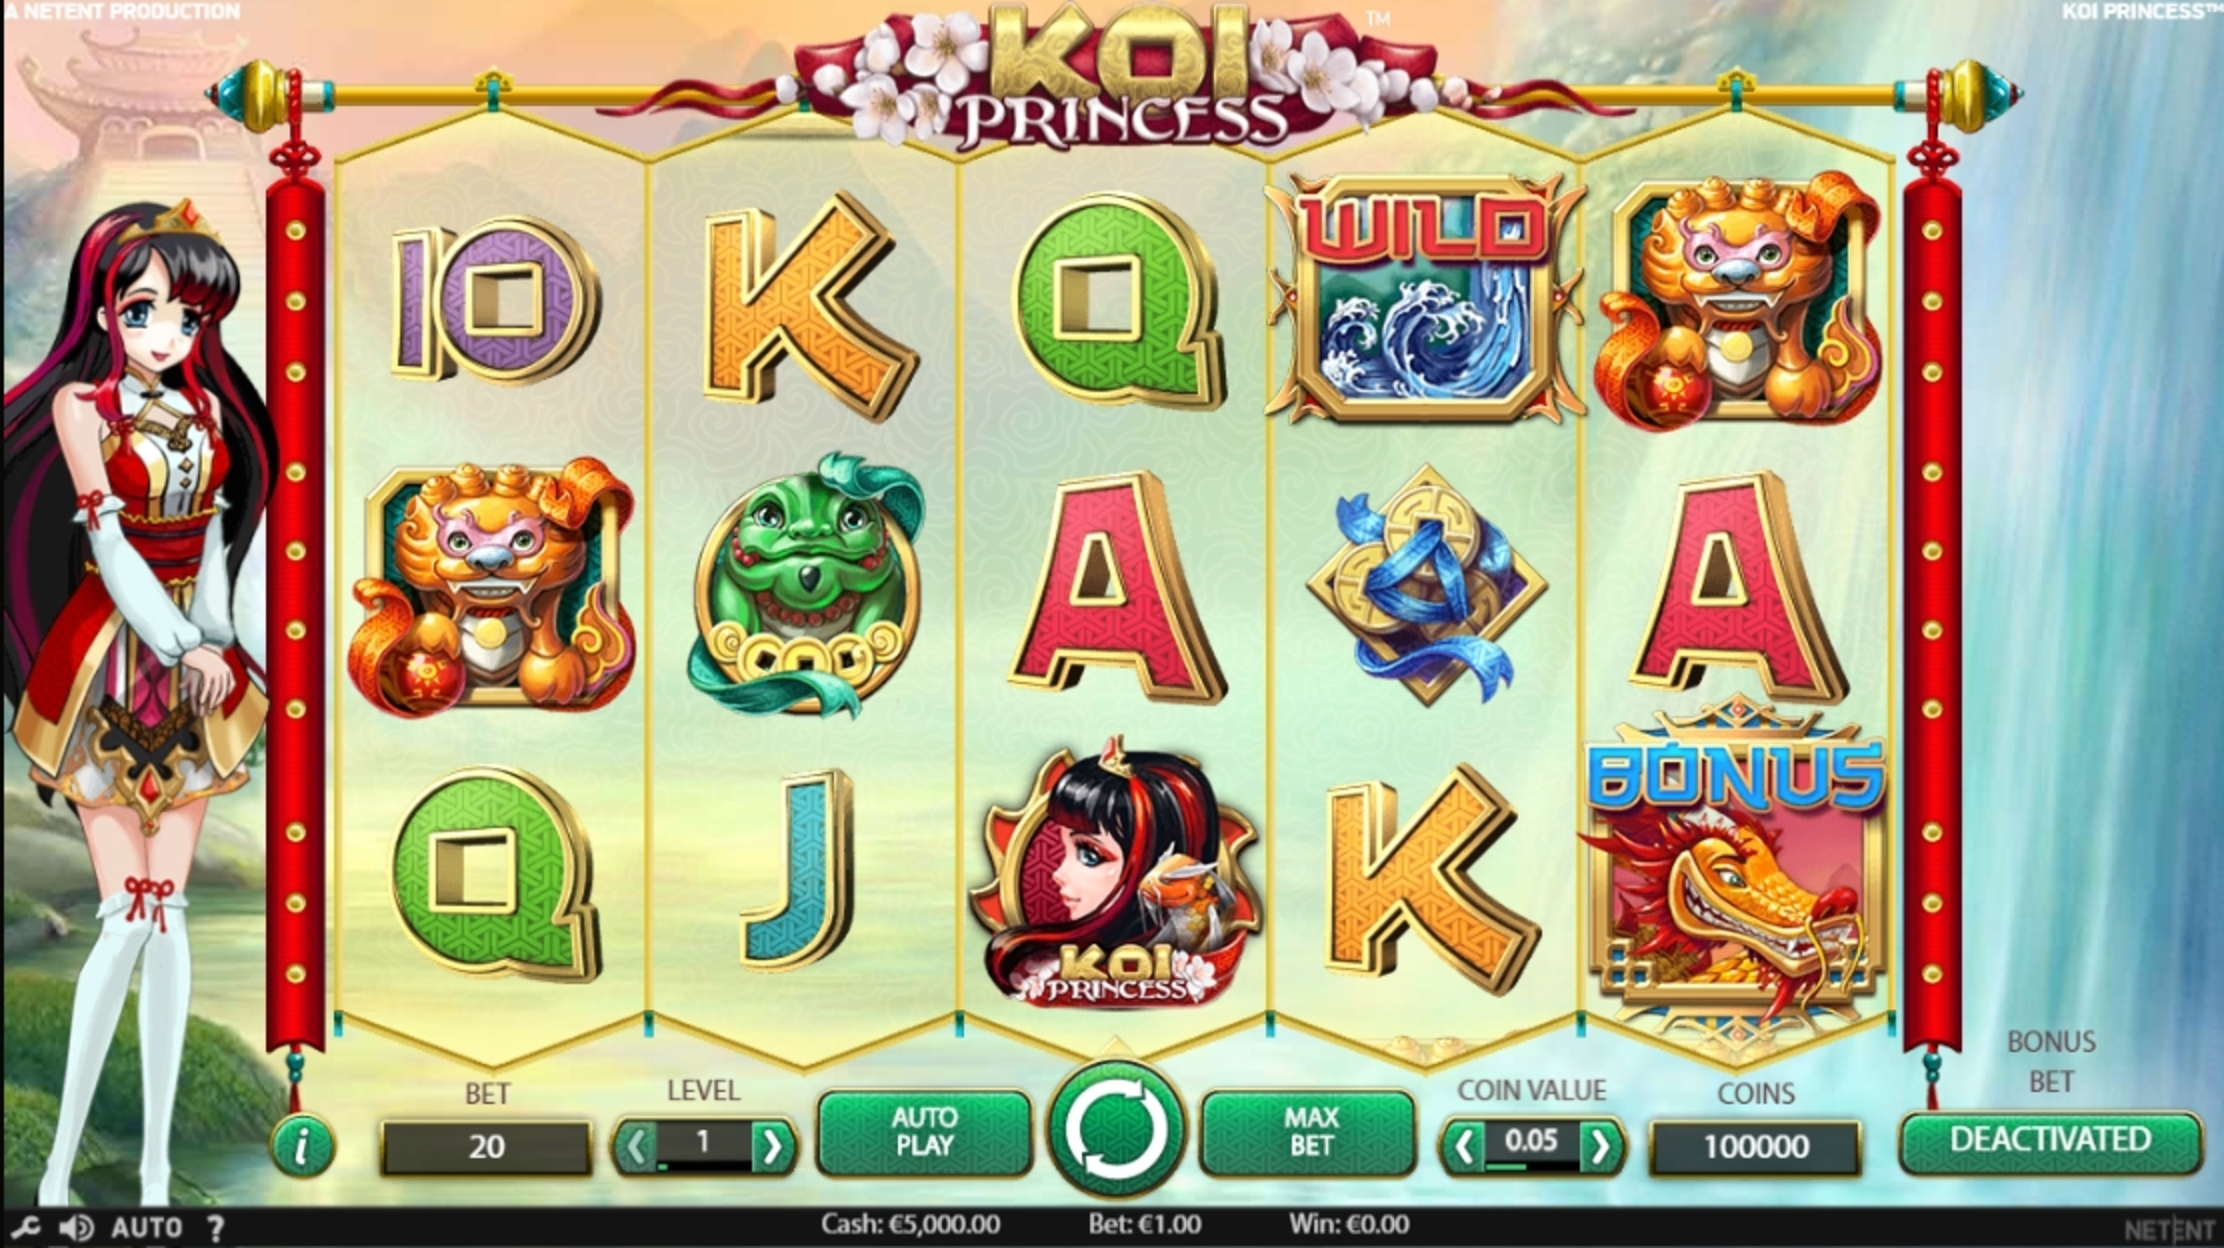 Reels in Koi Princess Slot Game by NetEnt